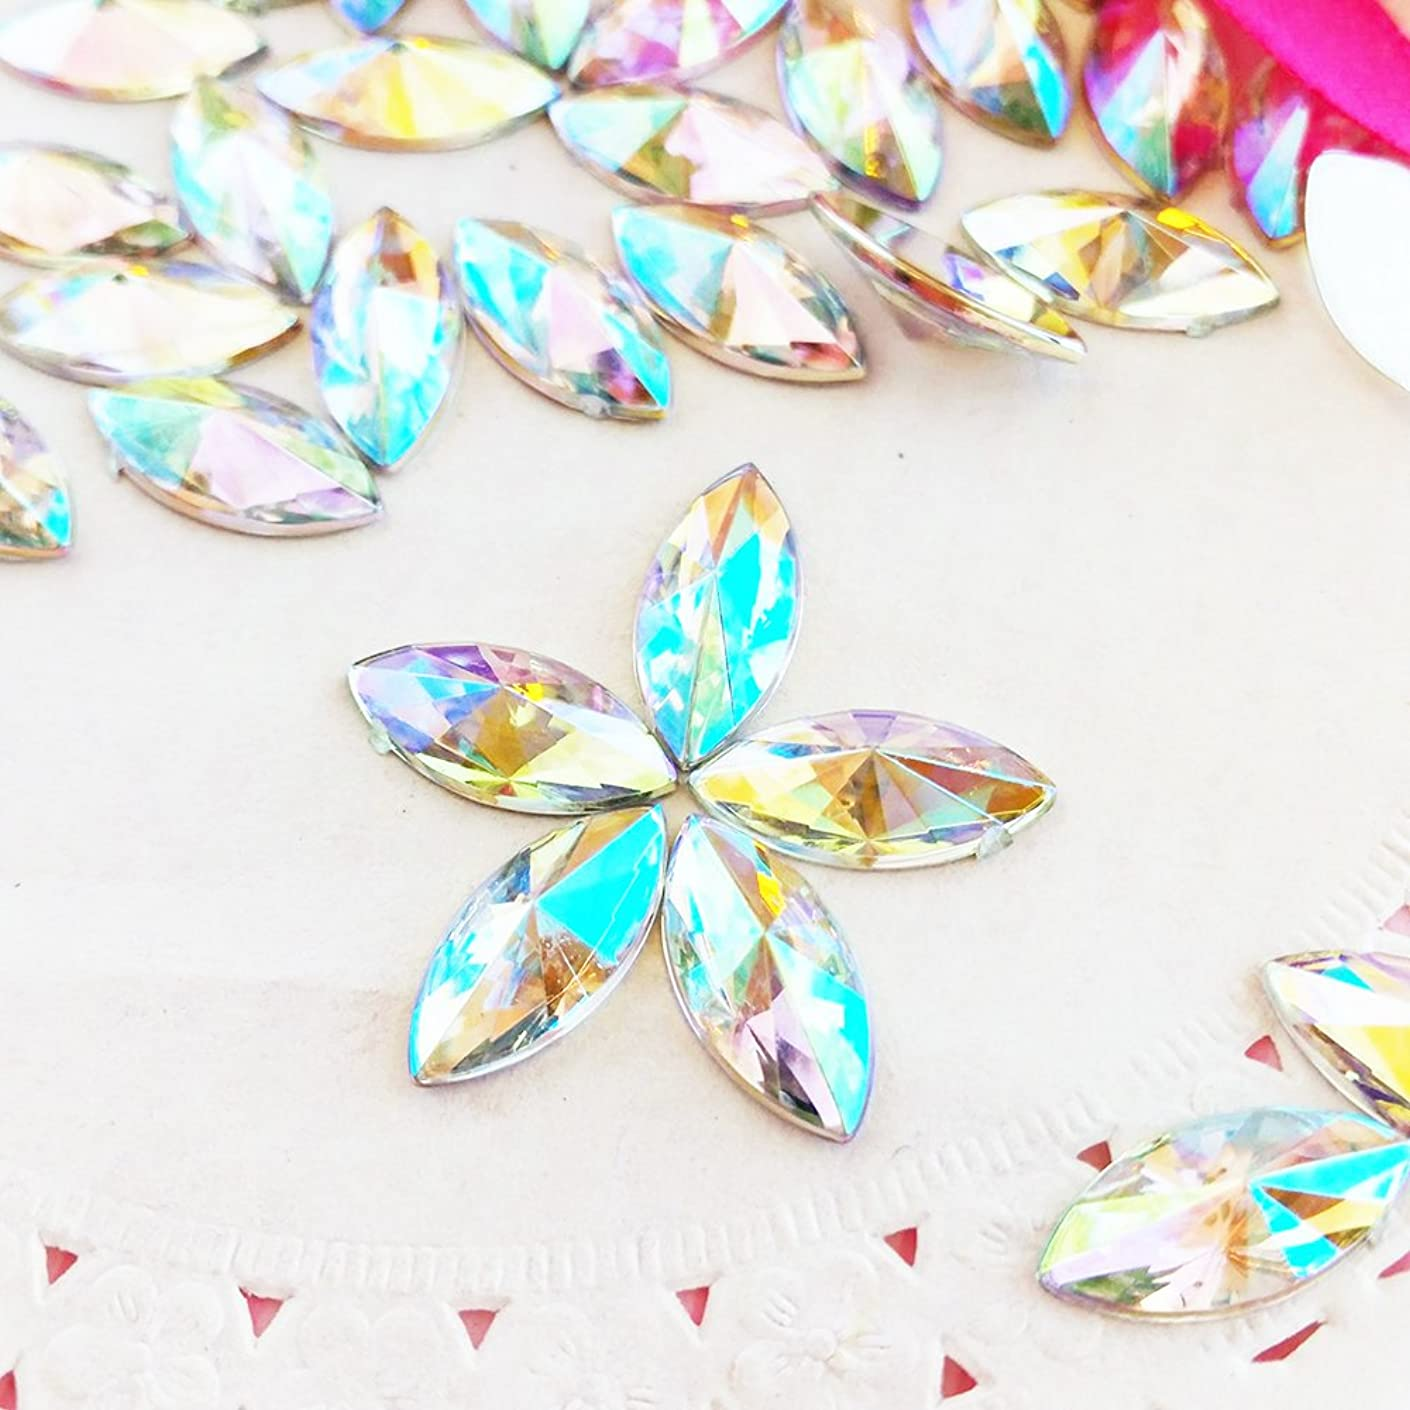 30 pcs 6x14mm Marquise Crystal AB Glittery Acrylic Special Effect Rhinestone includes Rhinestones Flat Back Samples from GreatDeal68